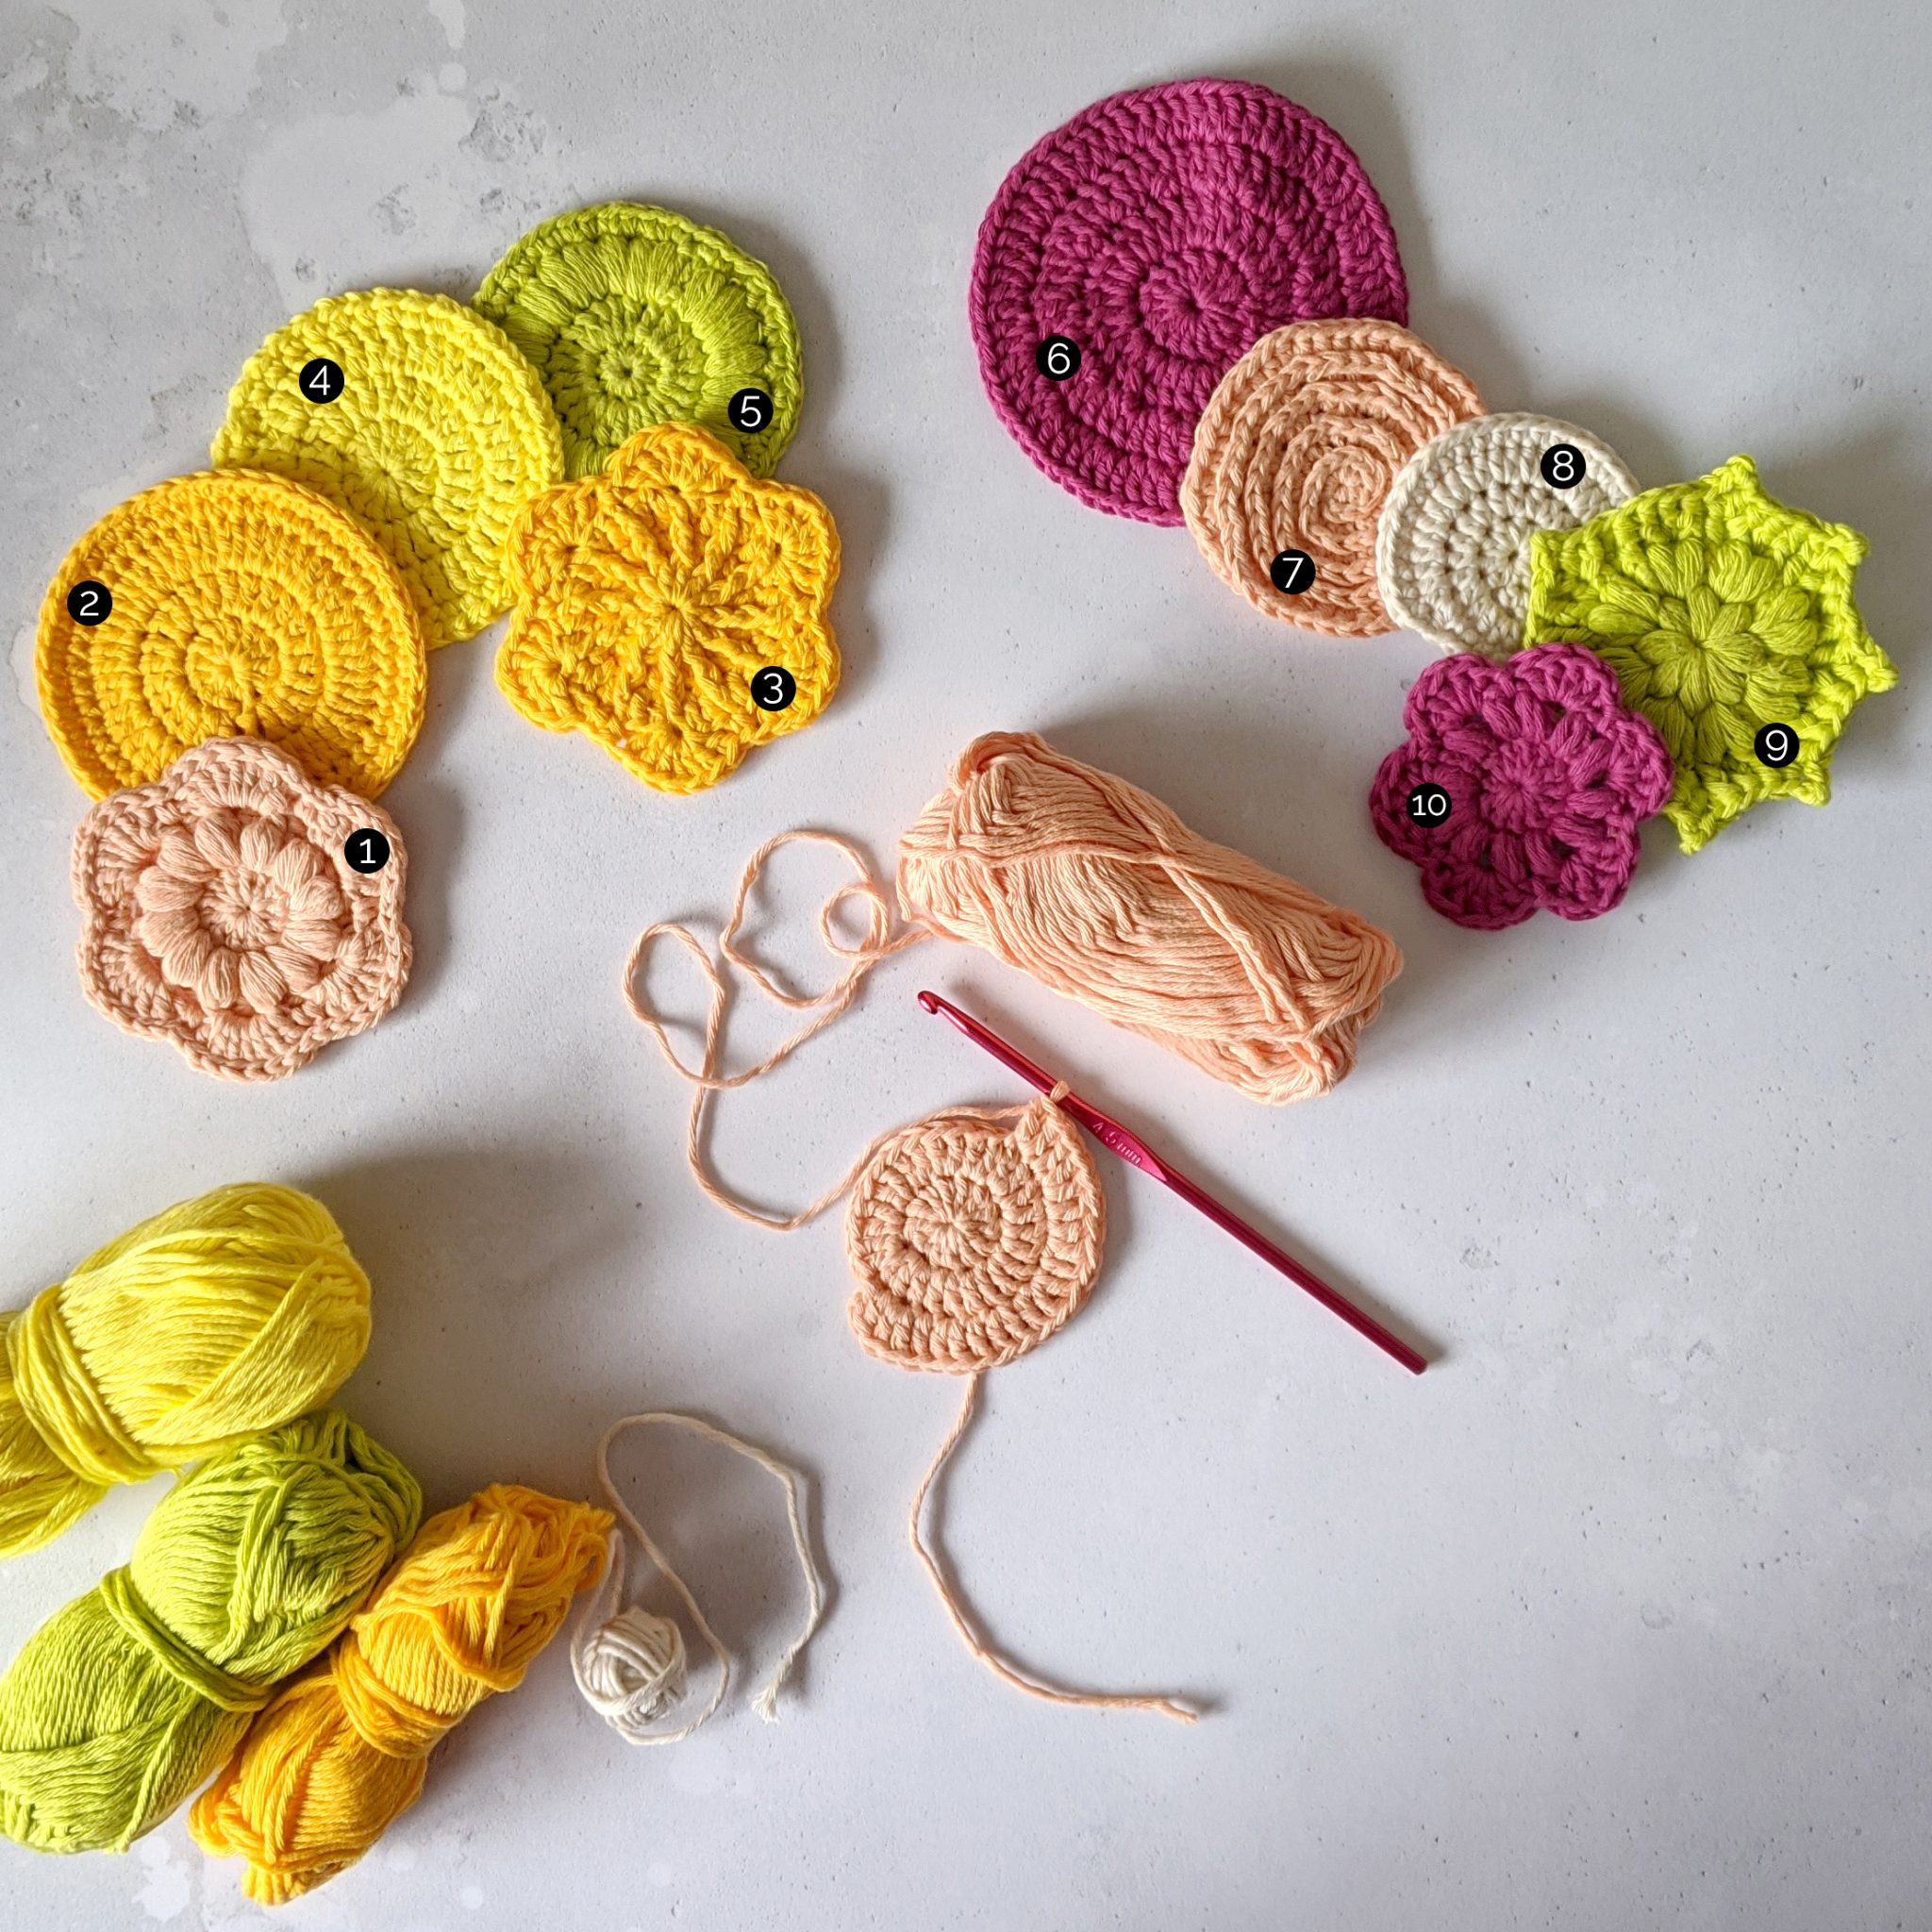 Ten finished crochet face scrubs in round and flower shapes made in yellow, green, peach and pink yarn. There is also a face scrub in progress. Marked up with numbers 1- 10